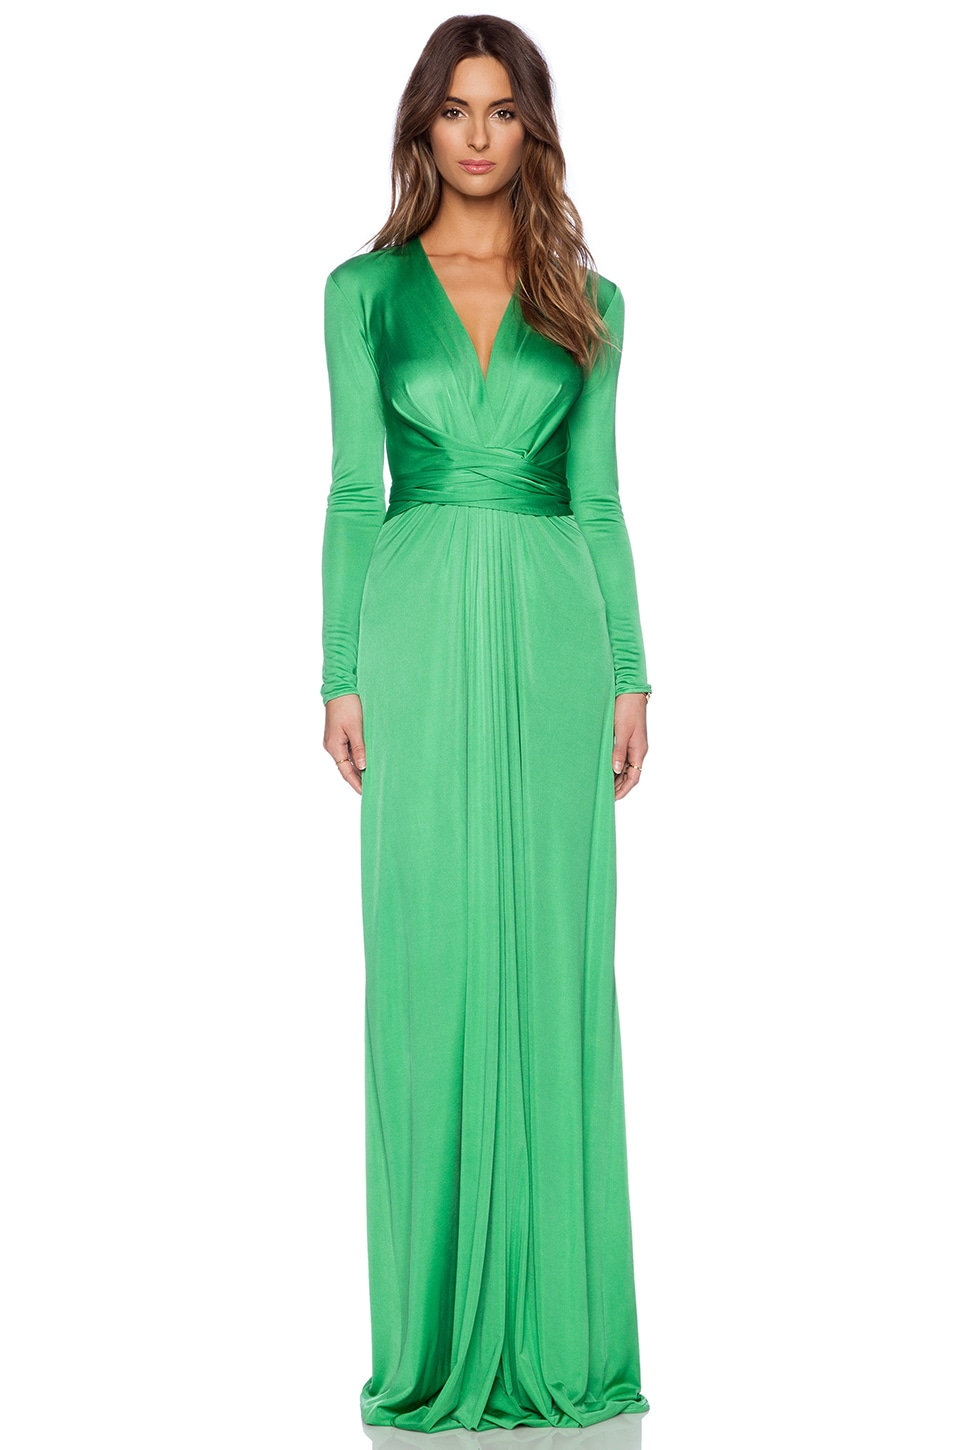 Issa Florence Maxi Dress in Green Glow